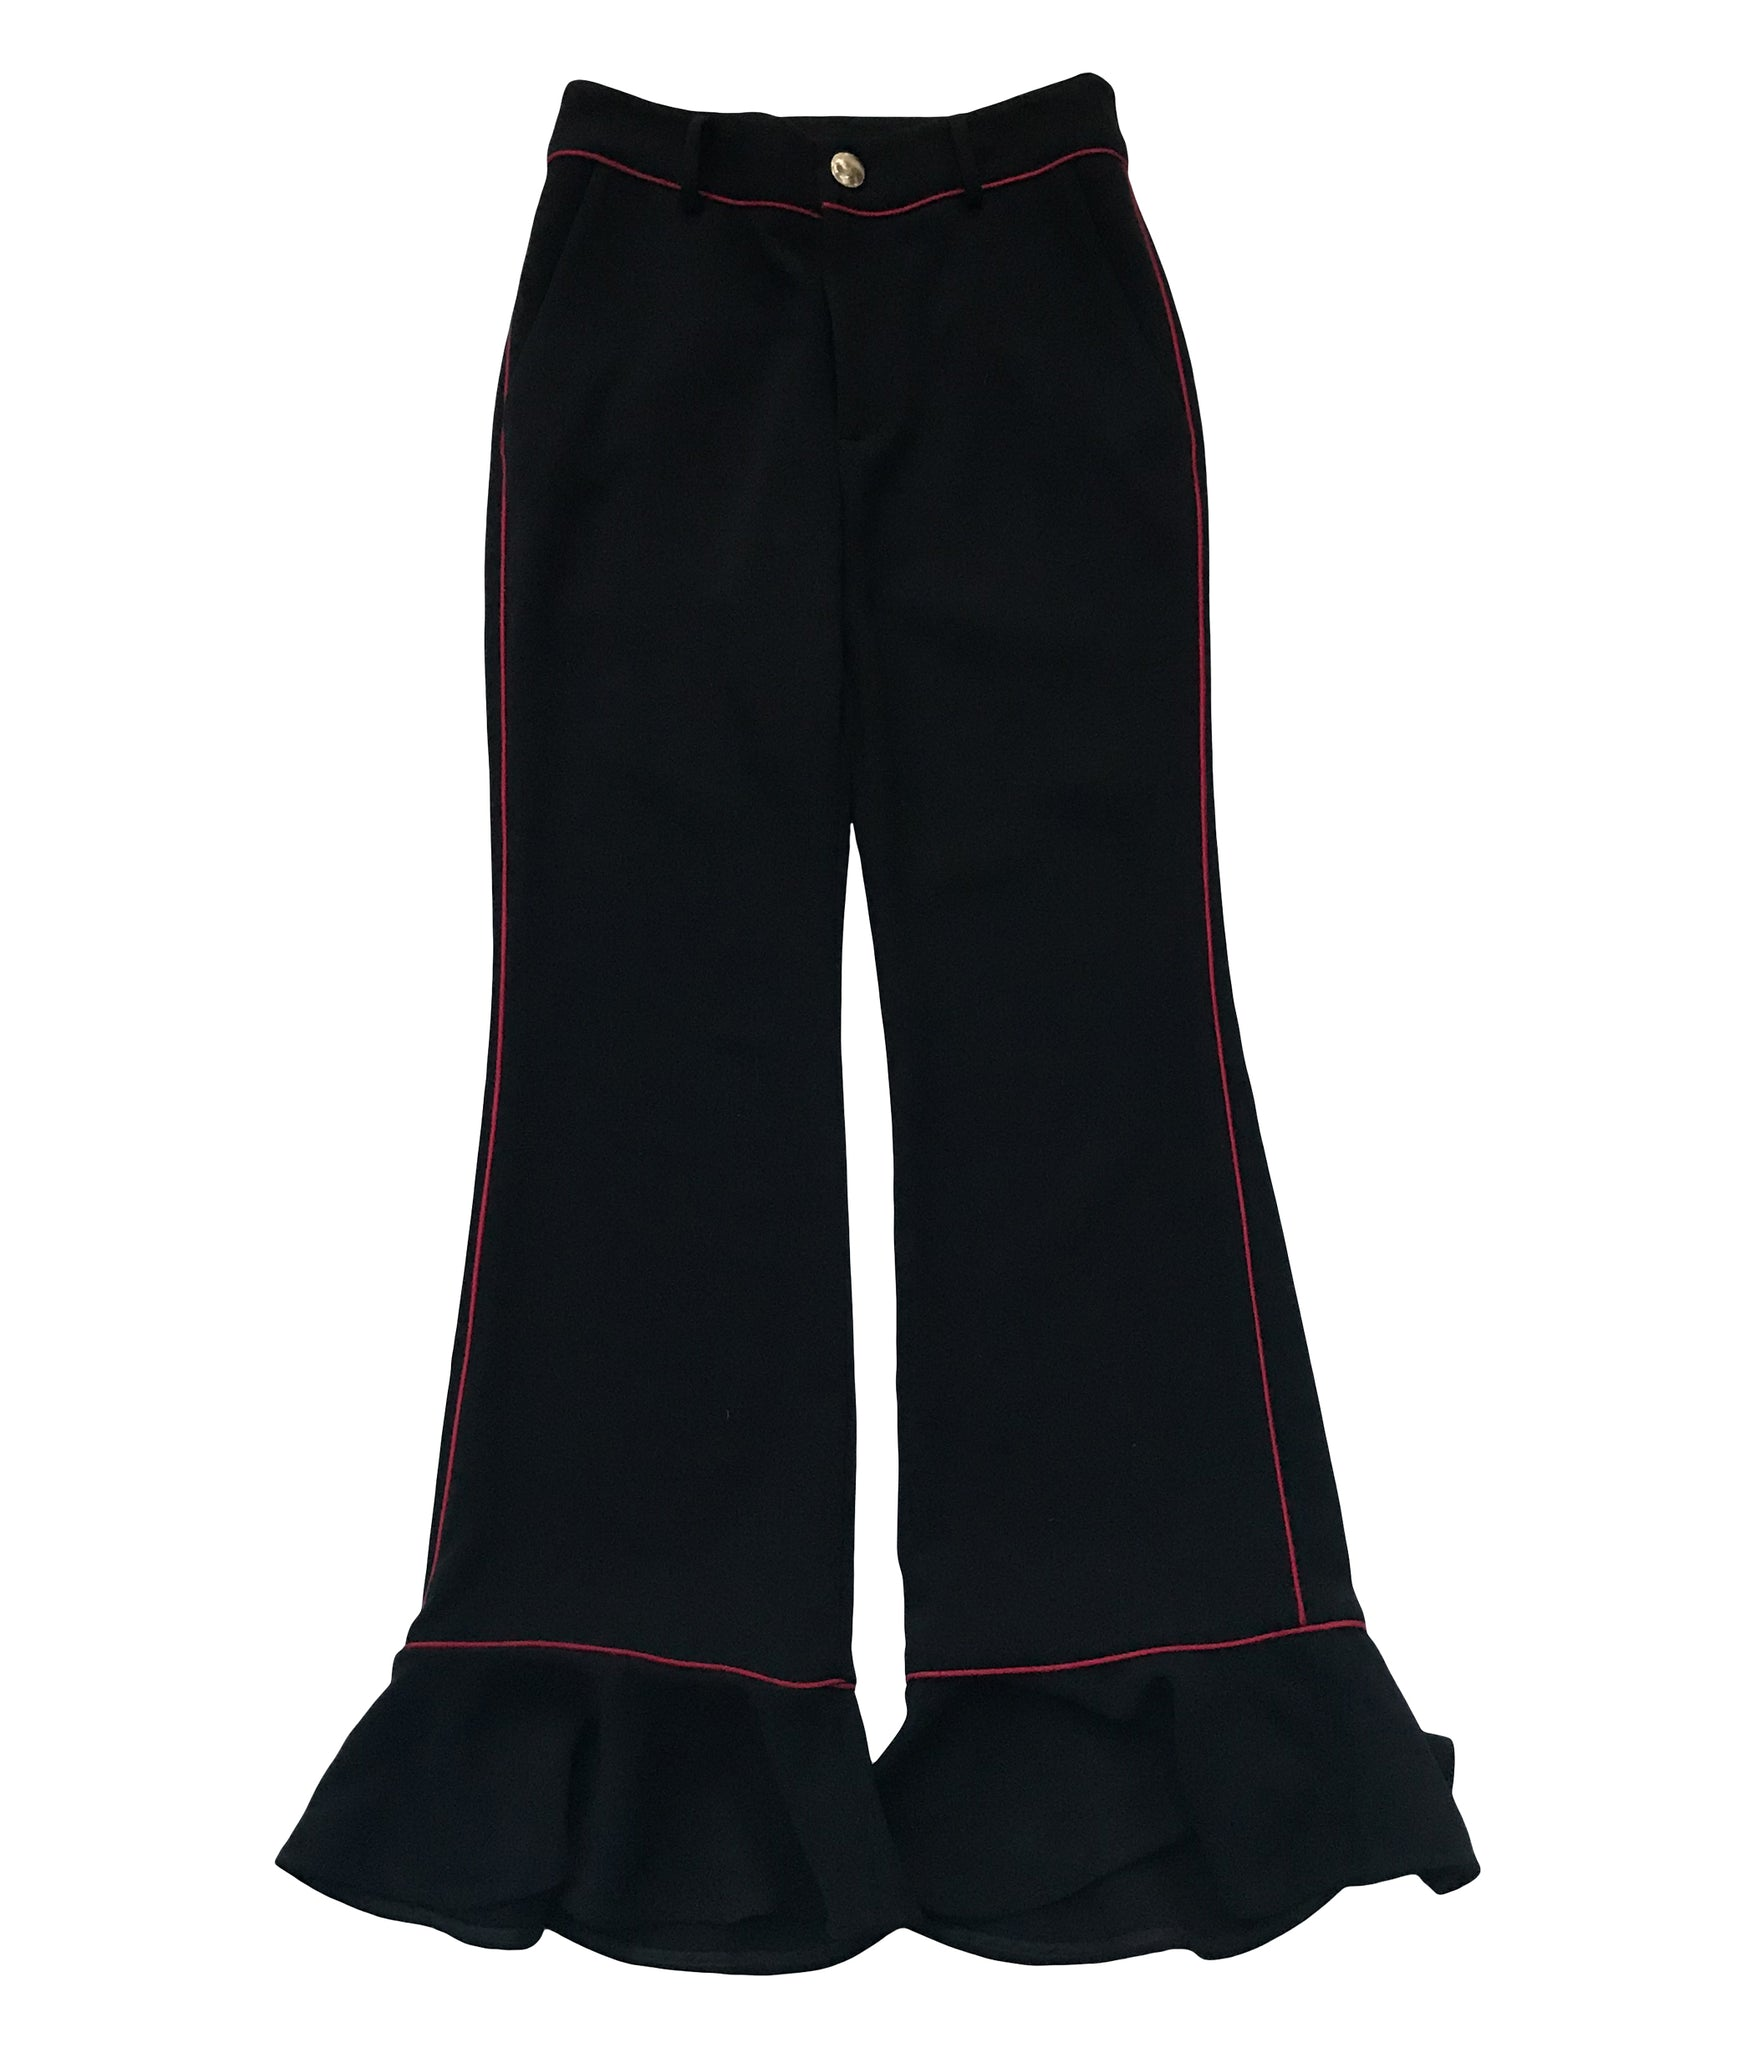 LAVEER Ruffle Annie Trouser In Black / Oxblood